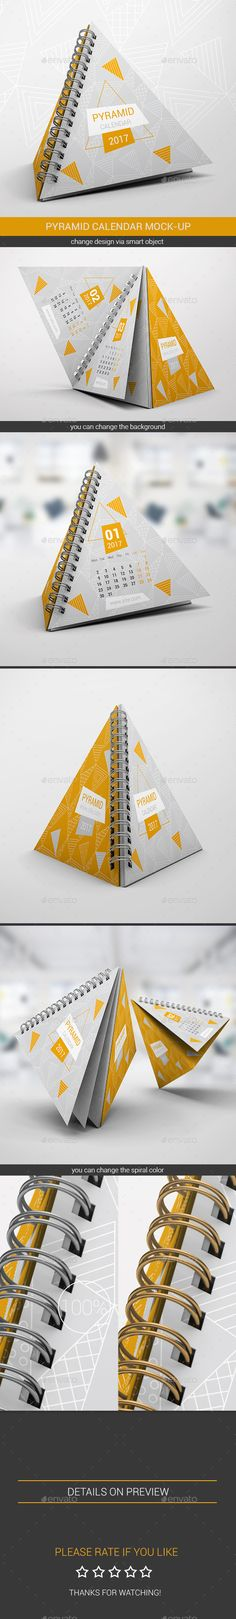 Pyramid Calendar Mock-Up - Miscellaneous Print